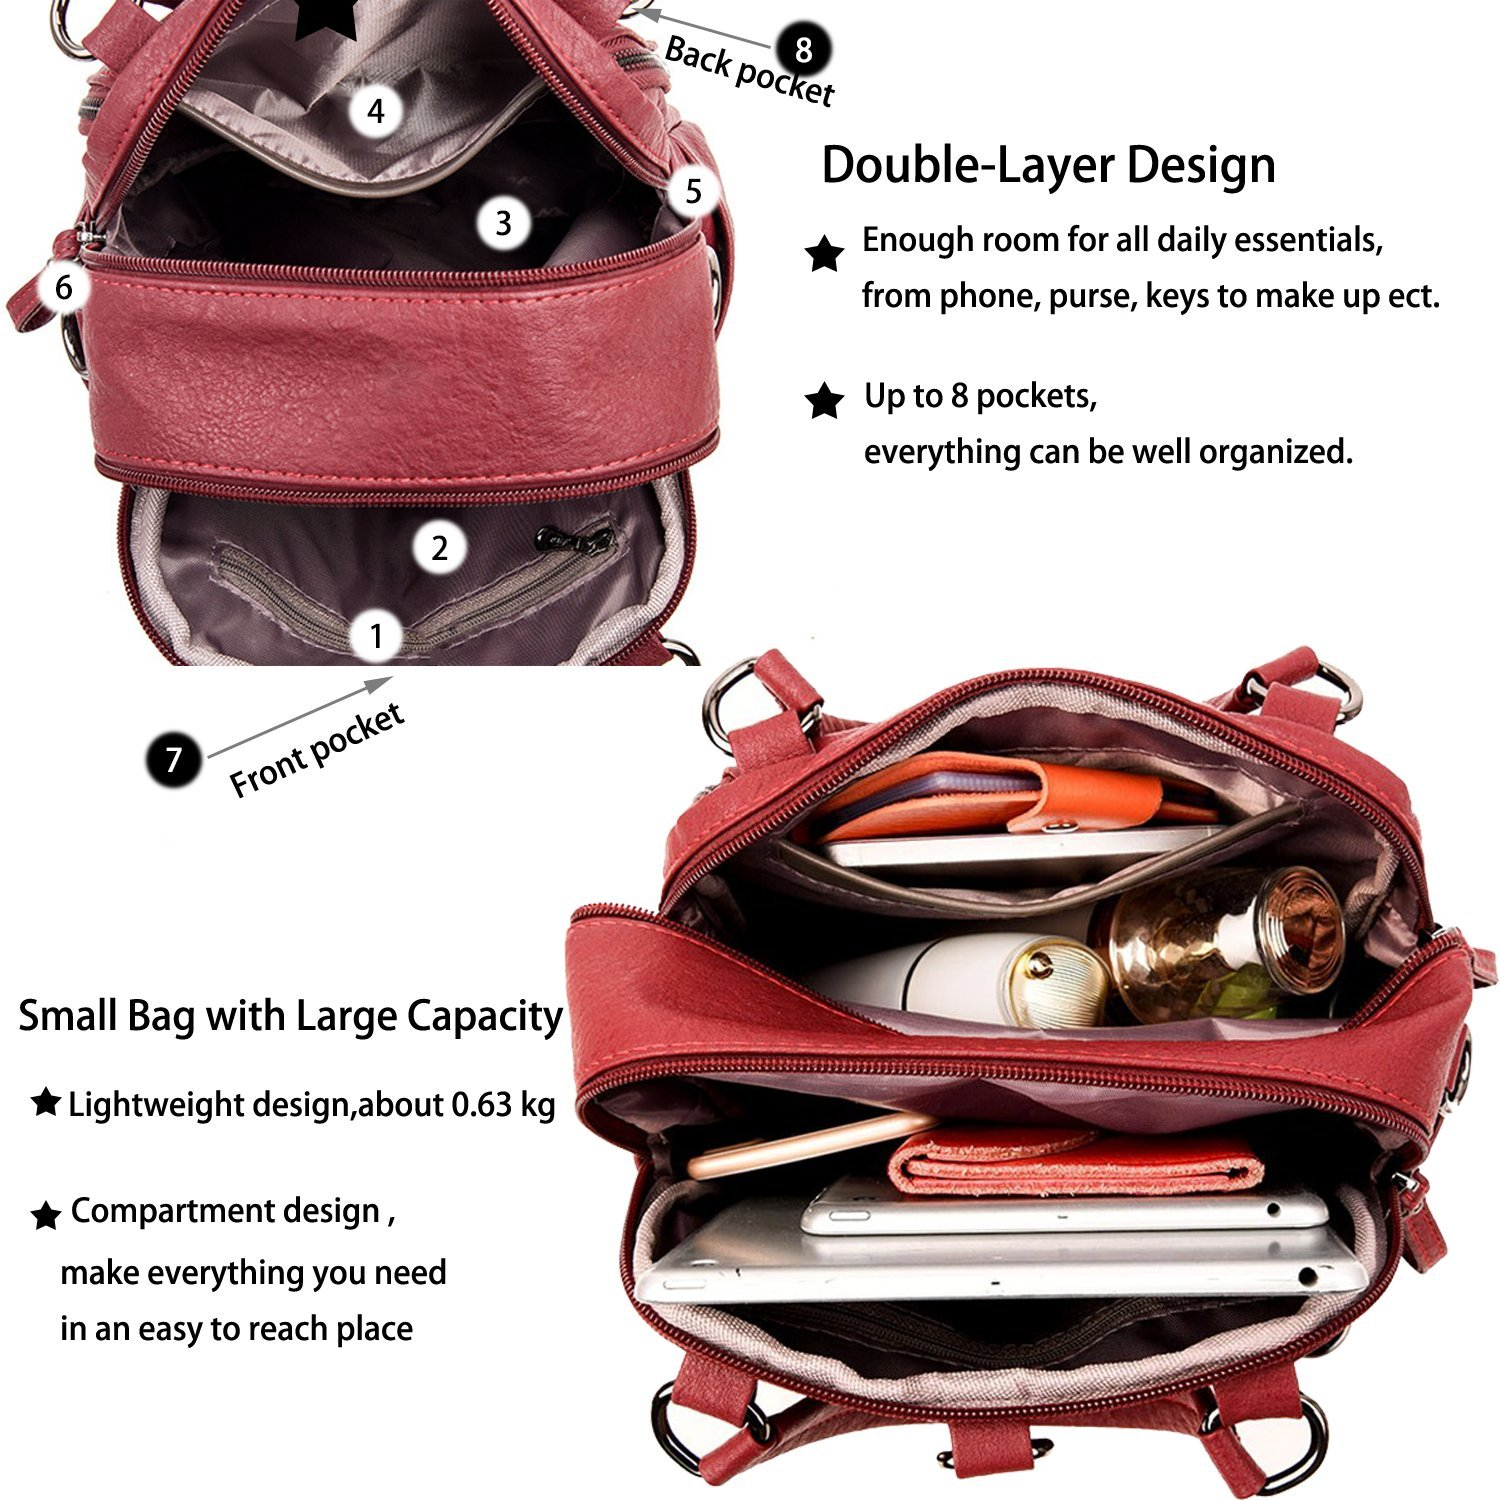 e61bc6c49c ... ELIMPAUL Women Backpack Washed Leather Ladies Rucksack Crossbody  Shoulder Bag Purse Top handle Bag with Small ...